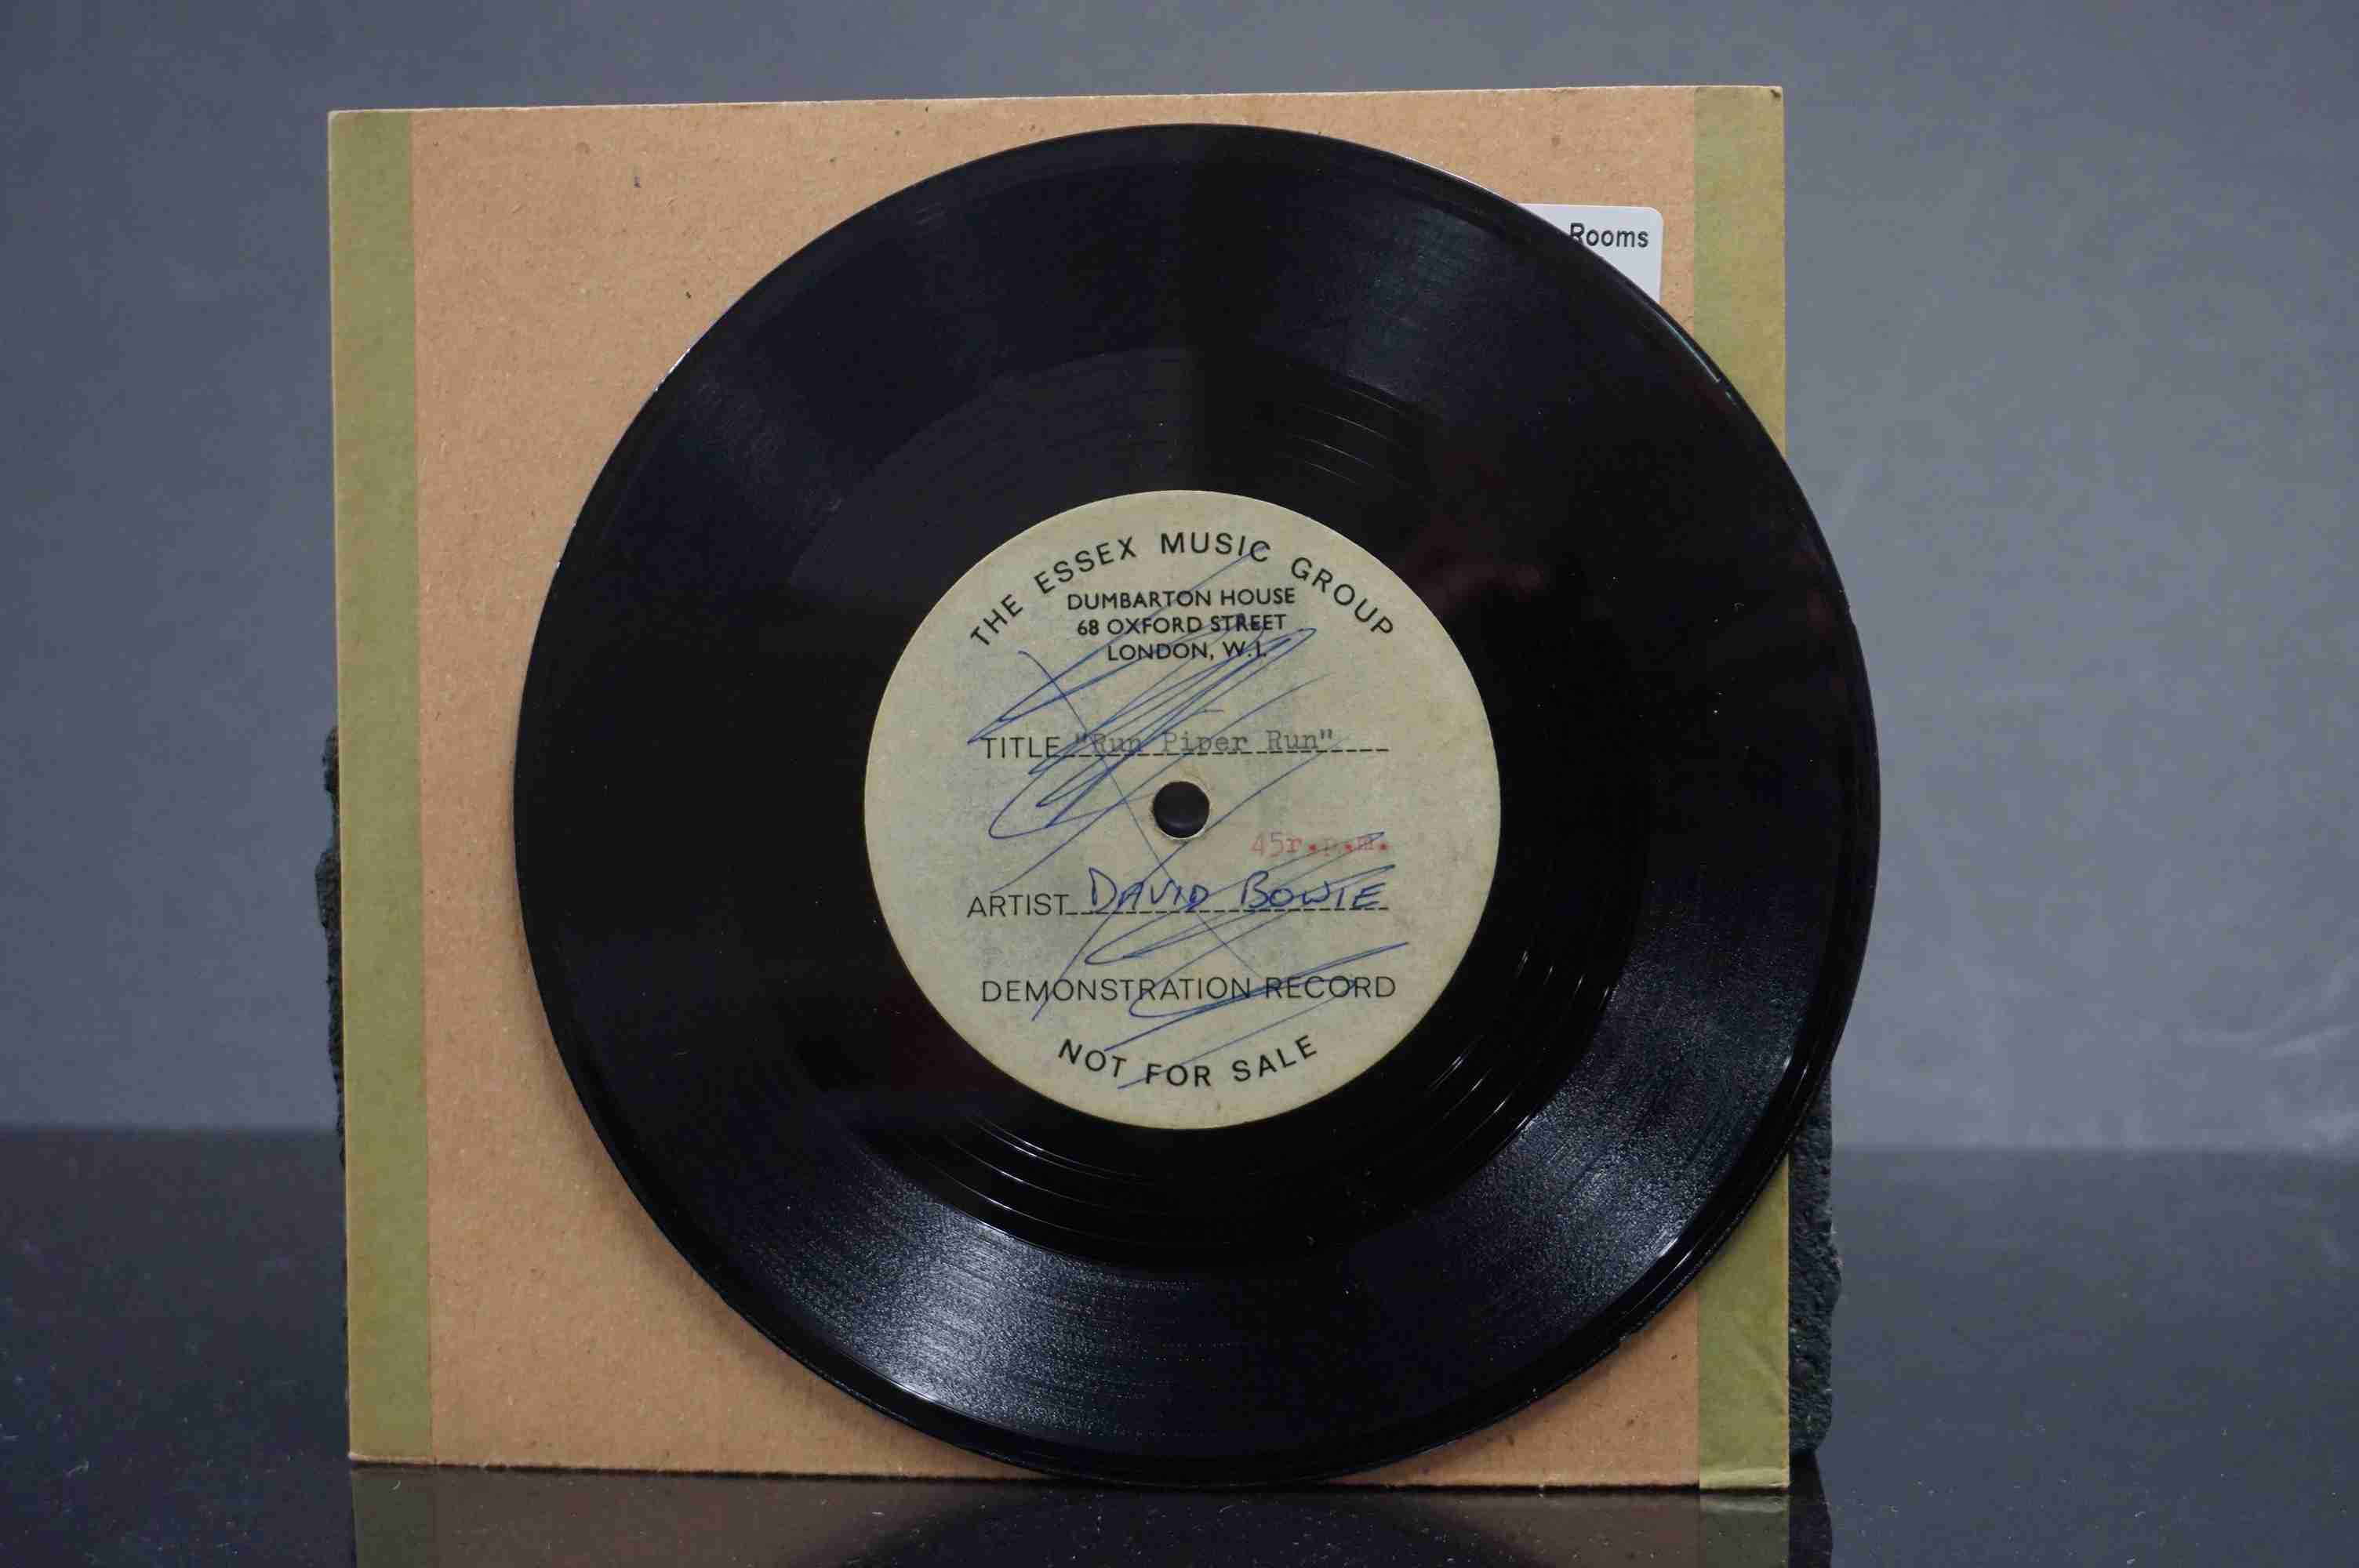 Vinyl - David Bowie / Ace Kefford - A two sided acetate featuring a previously unknown & unheard